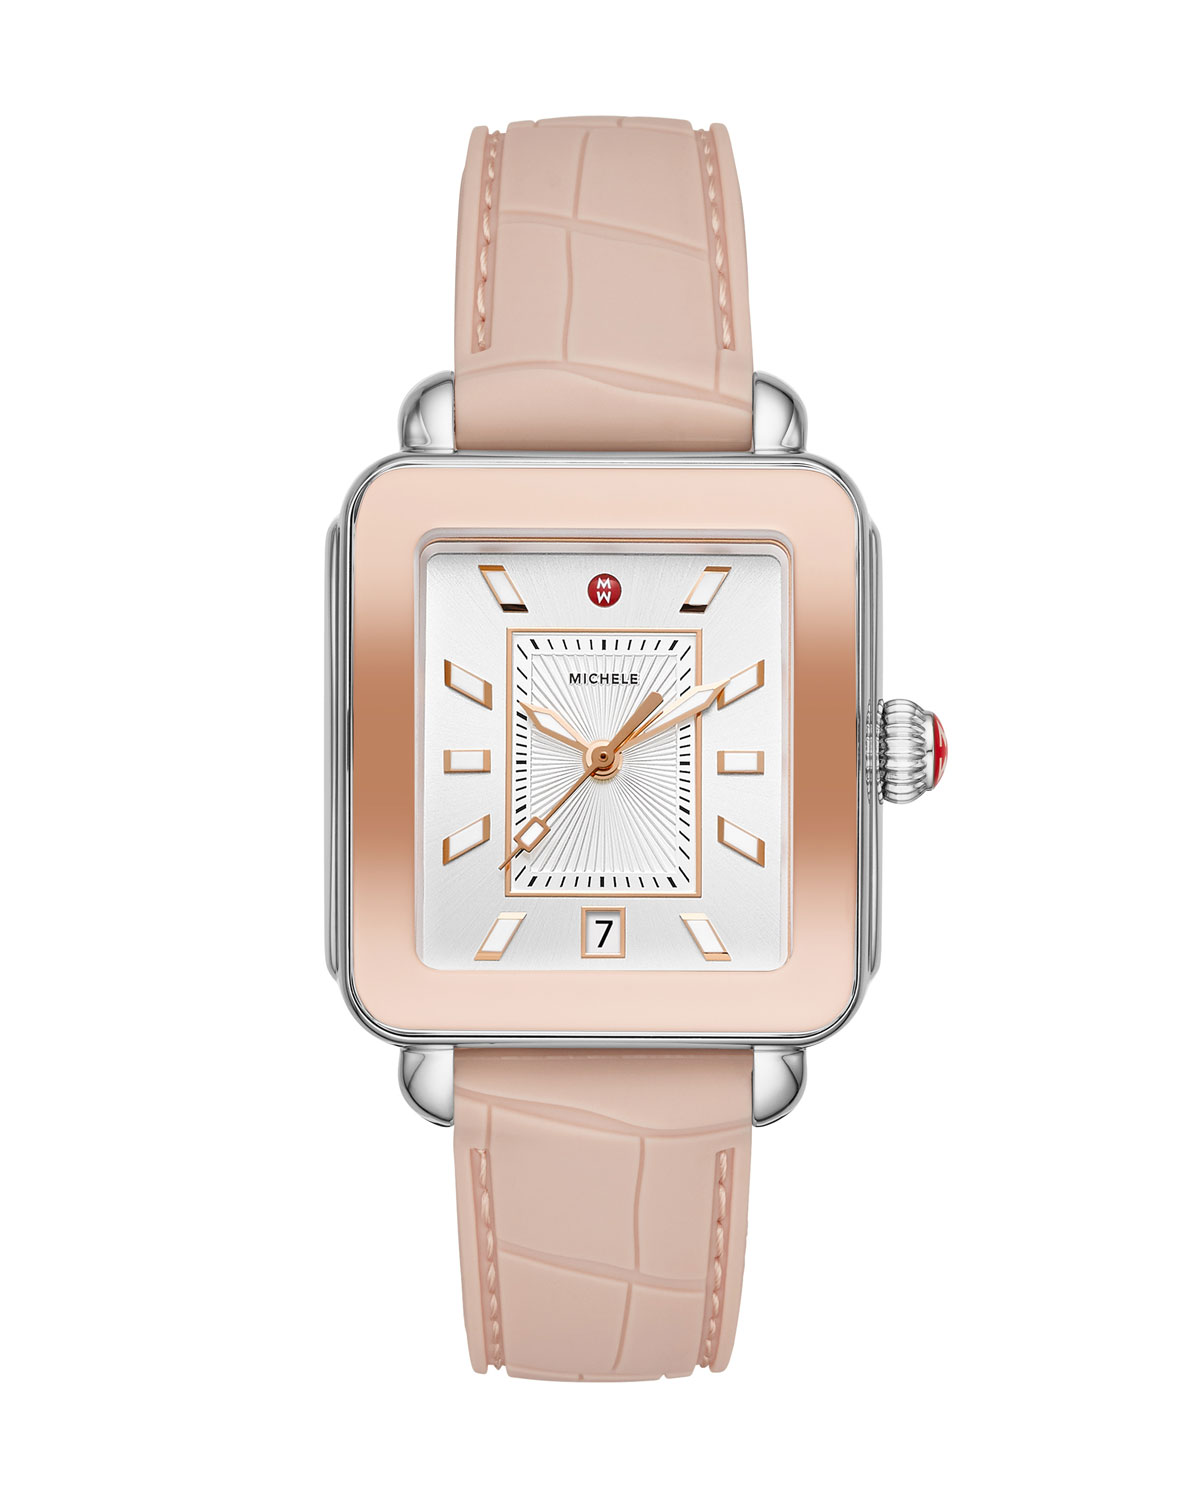 Deco Sport Silicone Embossed Watch in Desert Rose